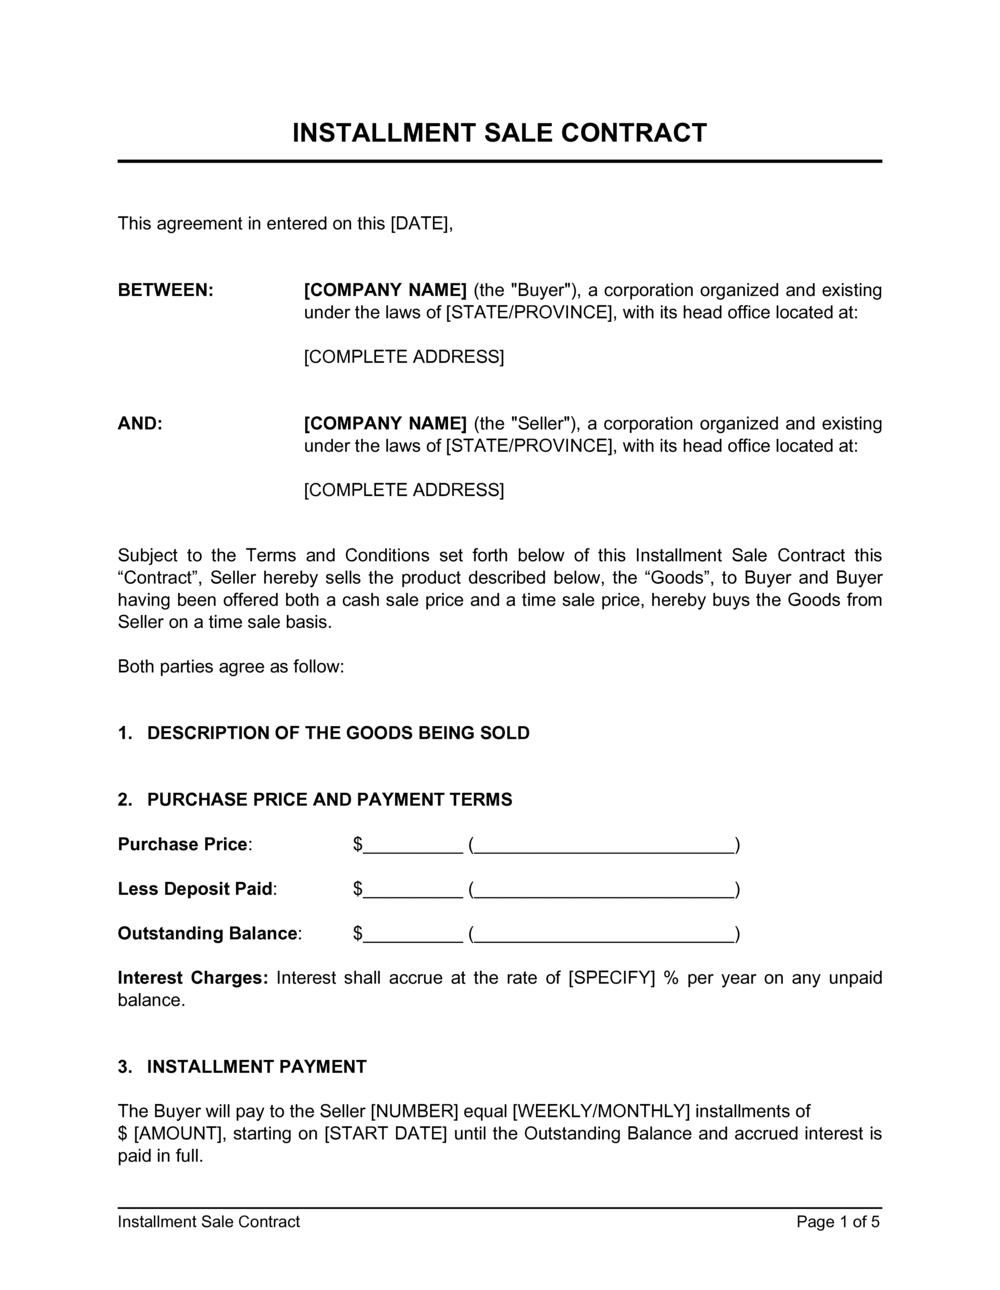 Business-in-a-Box's Installment Sale Contract Template